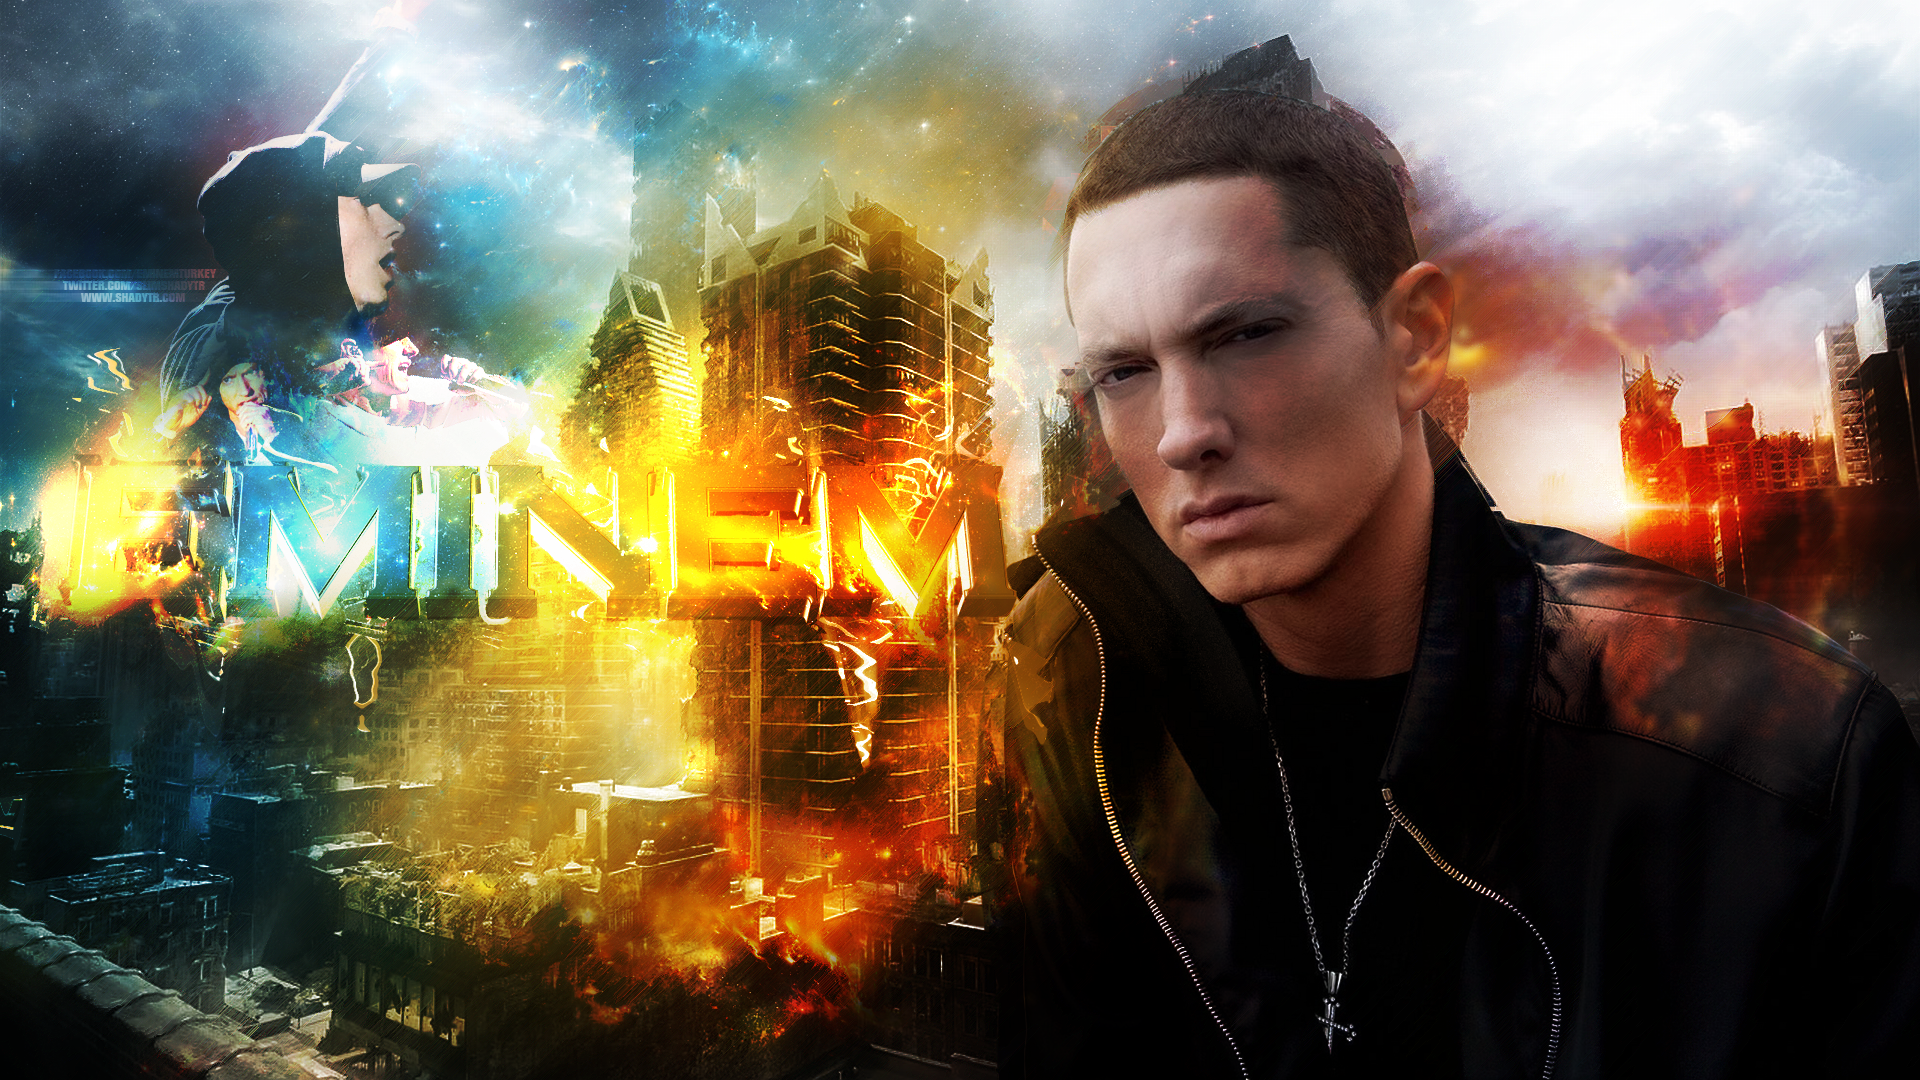 Background Wallpaper: Eminem Wallpapers High Resolution And Quality Download